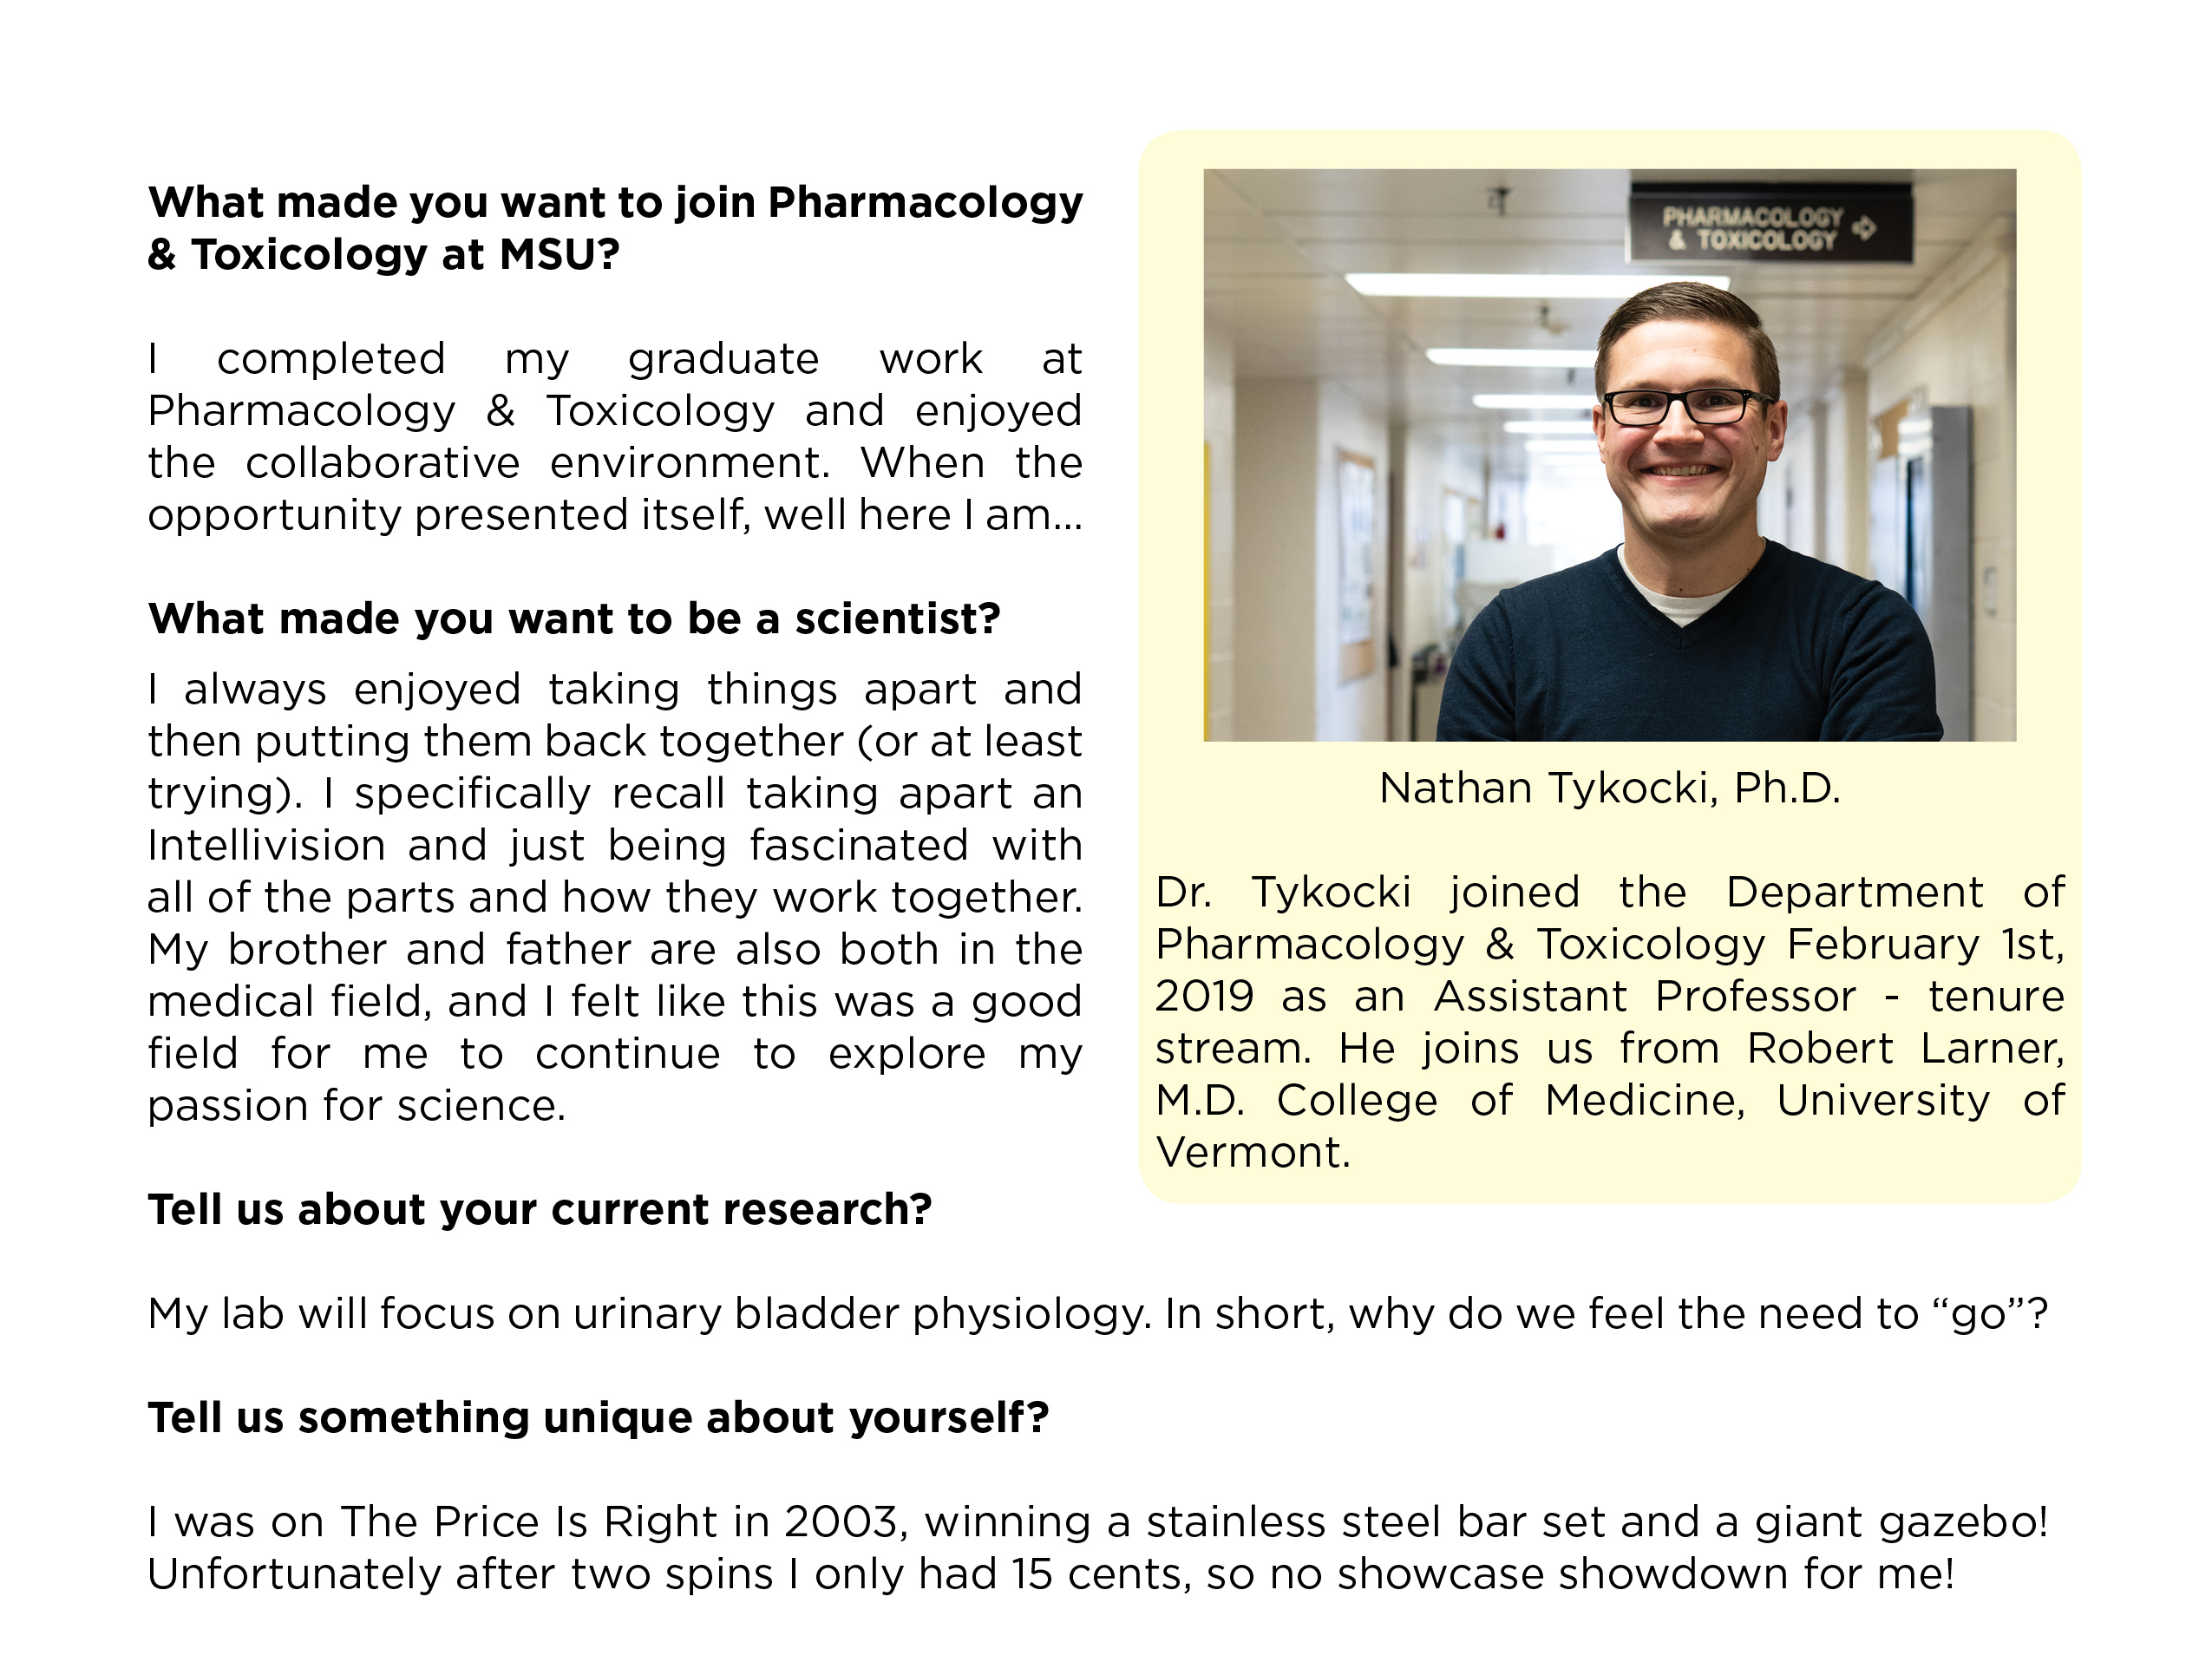 Dr. Nathan Tykocki joins the PharmTox team